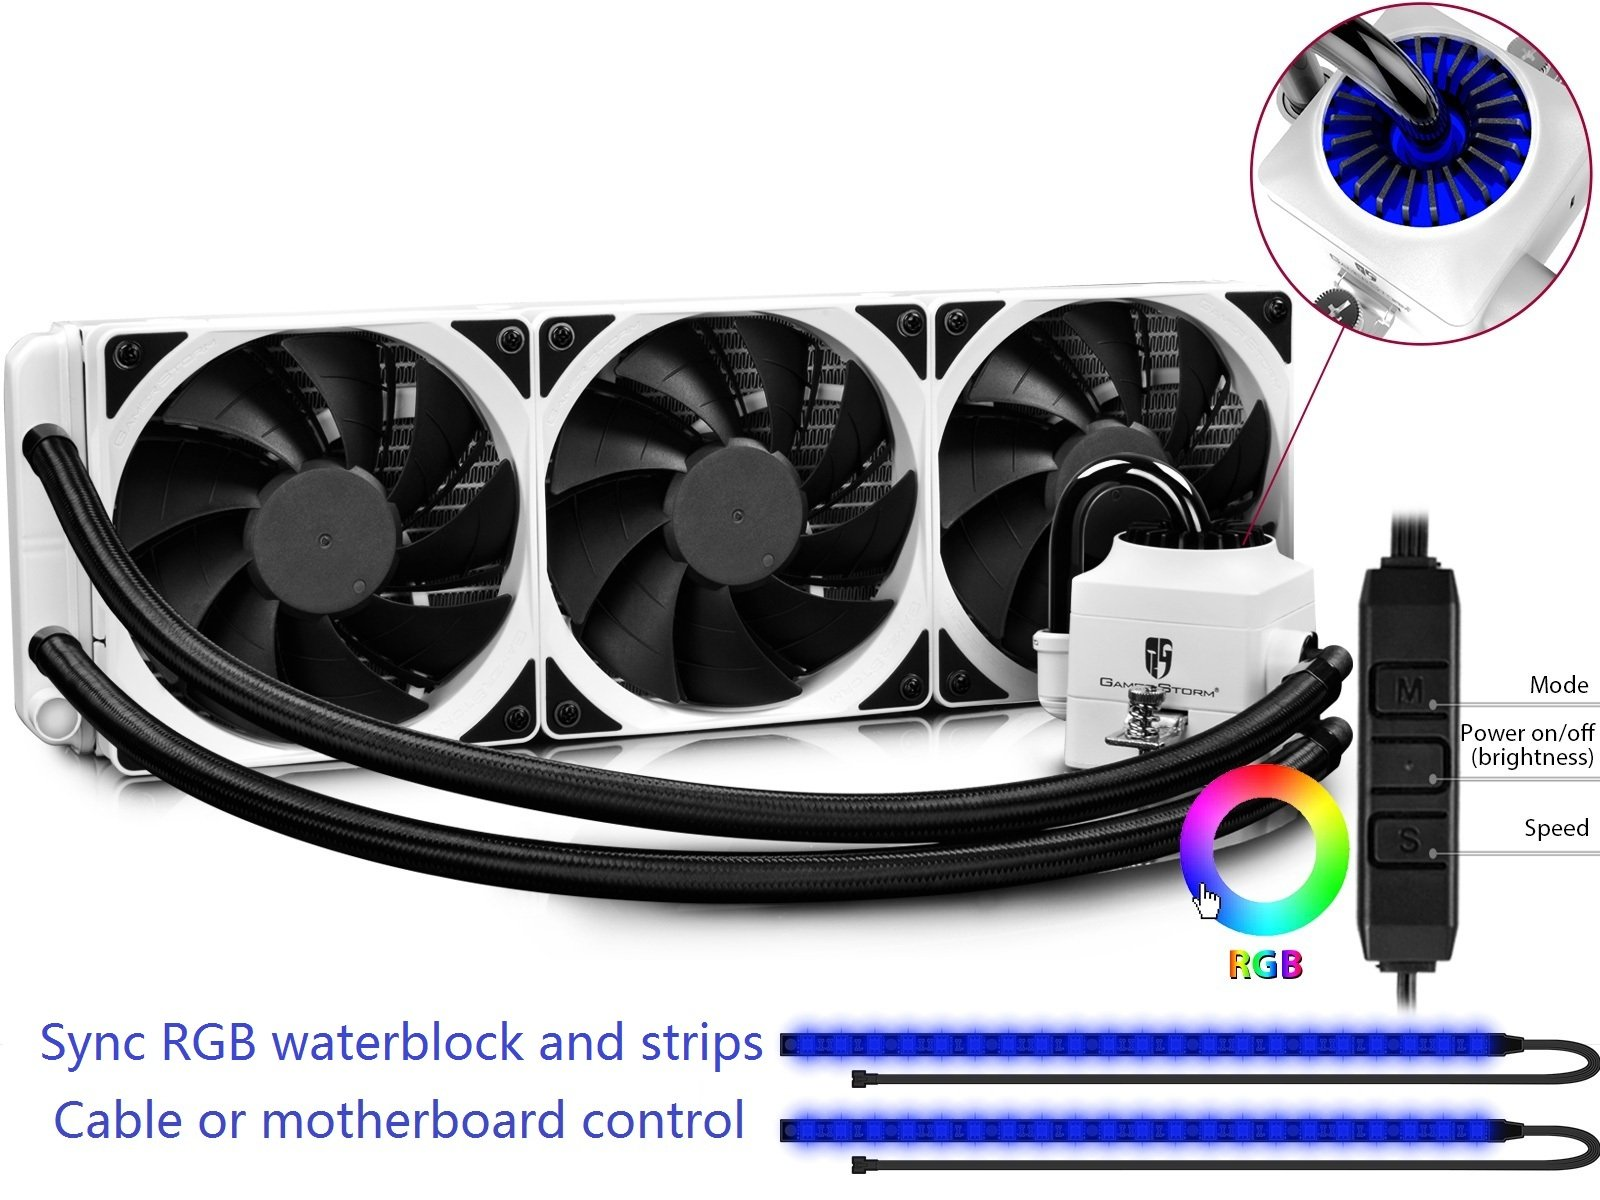 DEEPCOOL CAPTAIN 360EX RGB WHITE, AIO Liquid CPU Cooler, Synchronous RGB Waterblock and 2 LED Strips Controlled by Cable Controller or Software, 3×120mm PWM Fans, AM4 Compatible, 3-year Warranty by DEEPCOOL